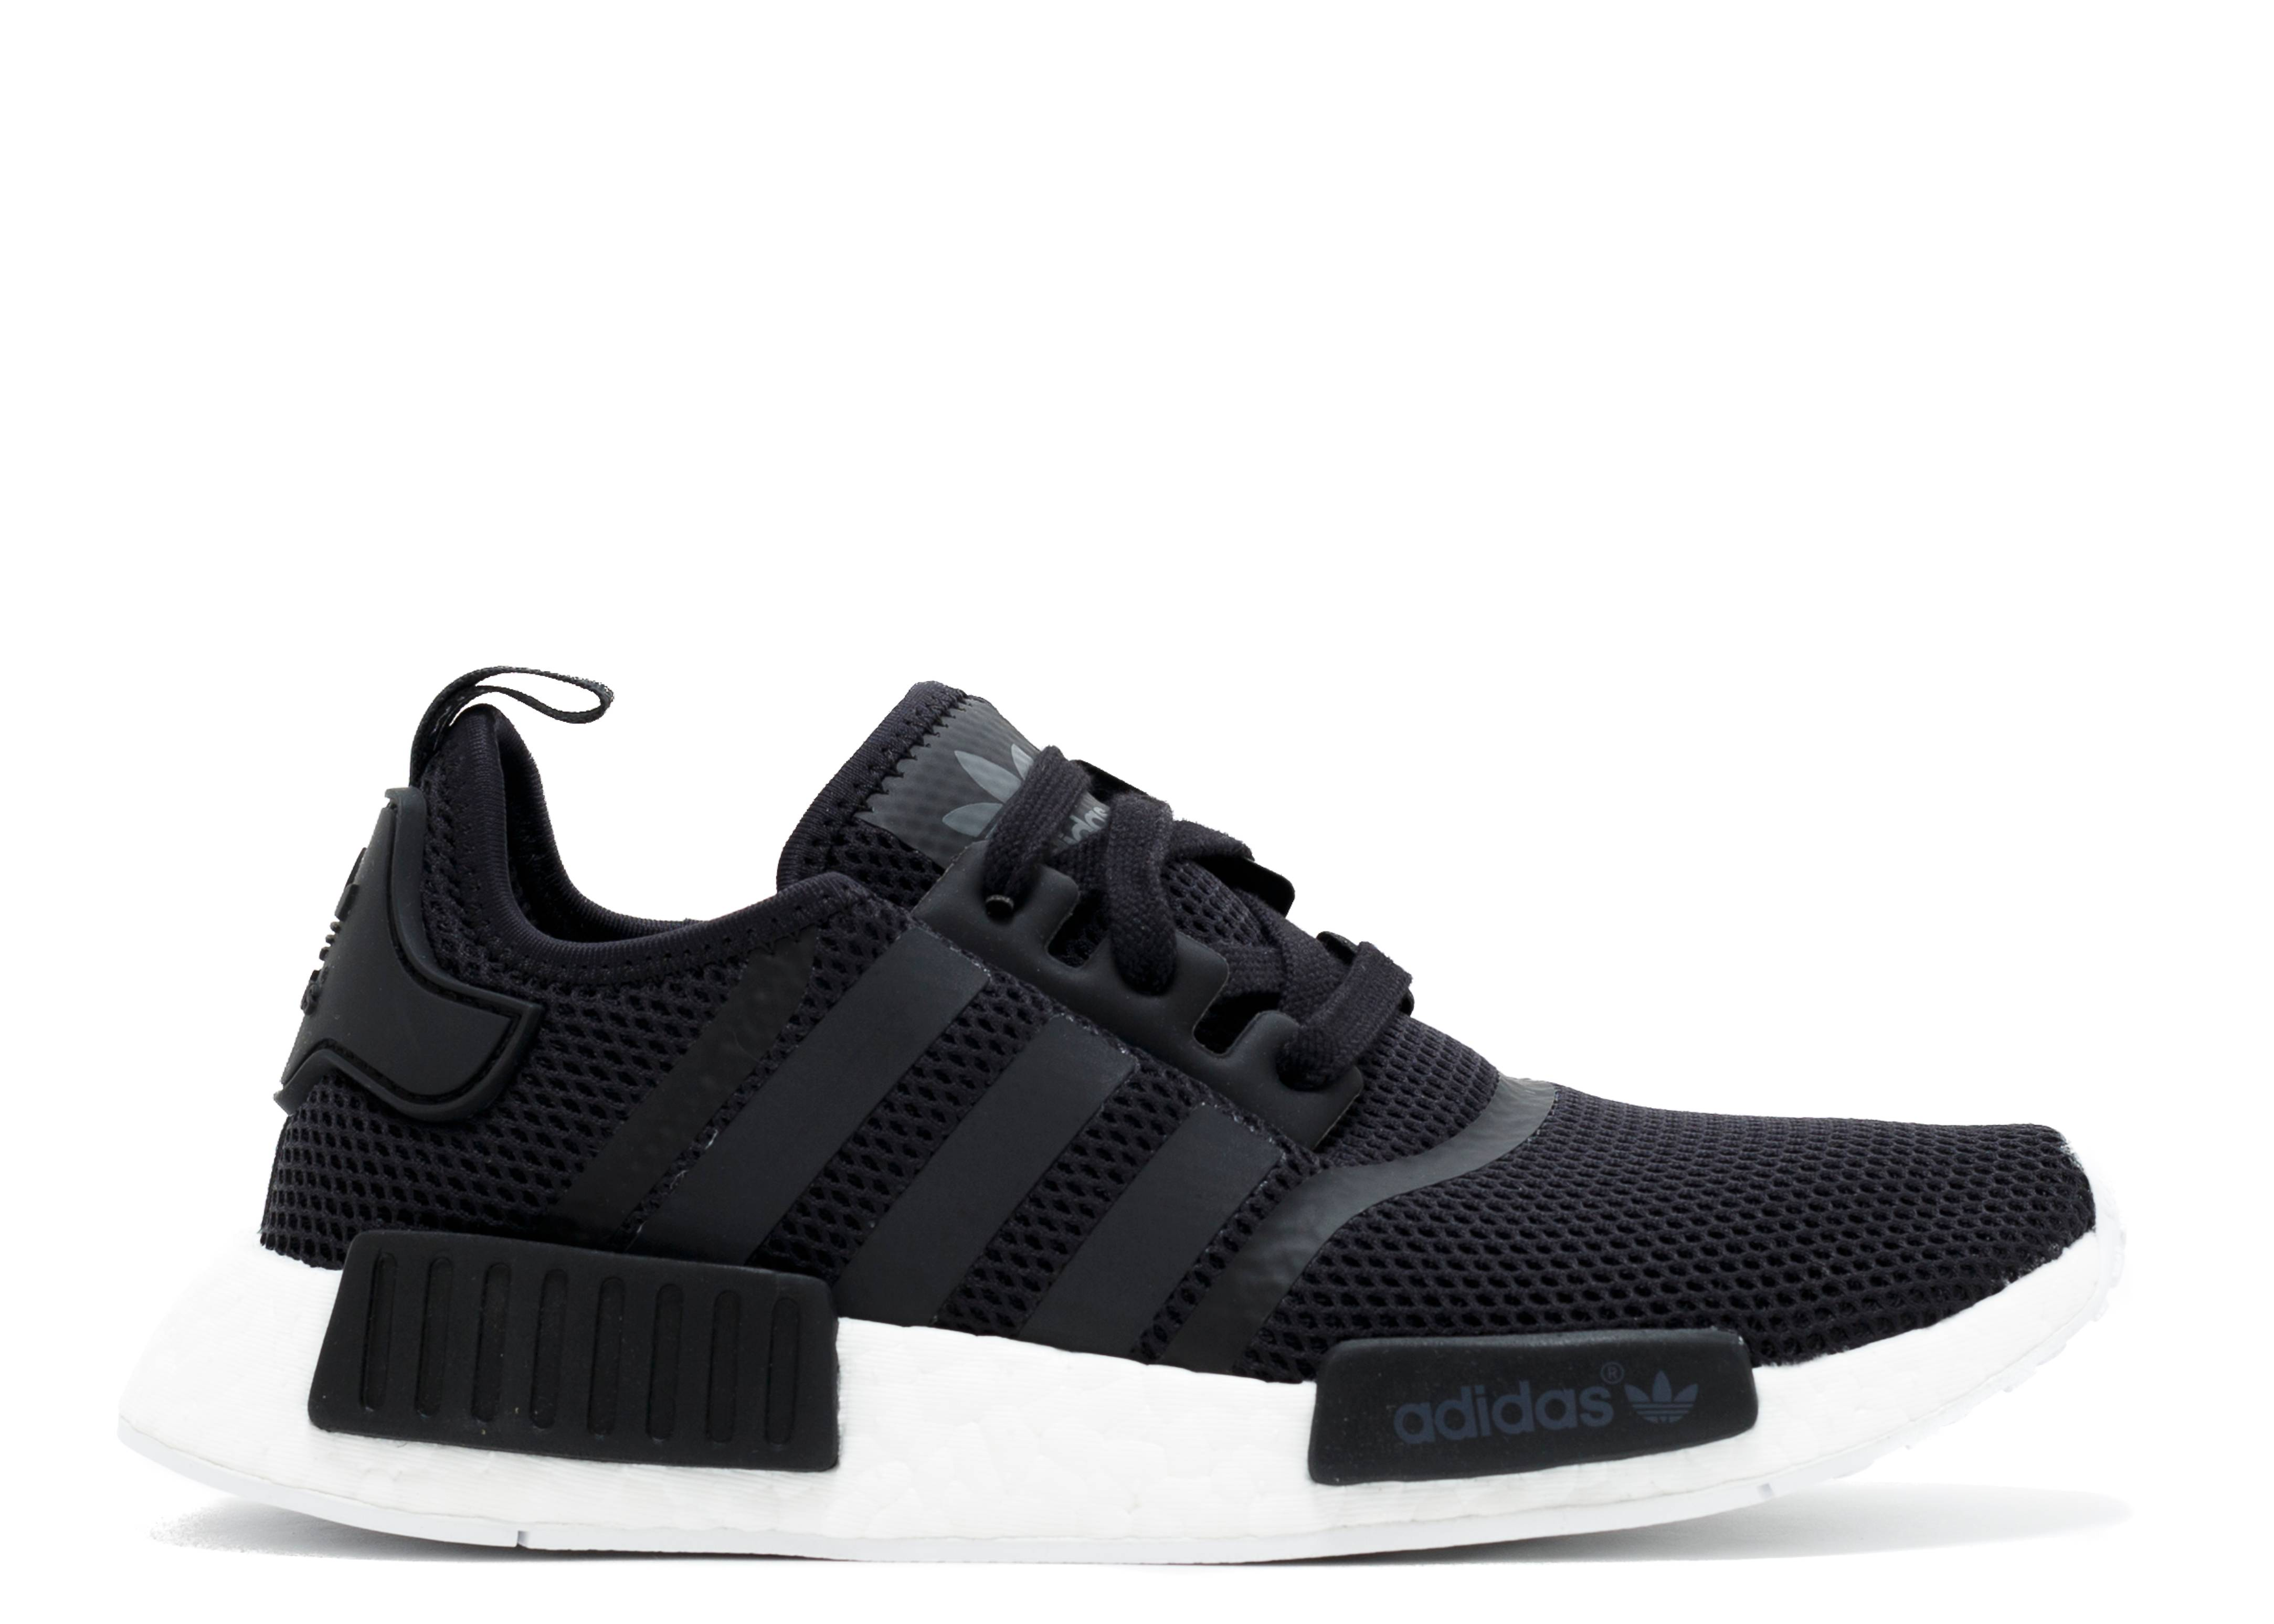 adidas nmd r1 men white adidas superstar black and white sneaker